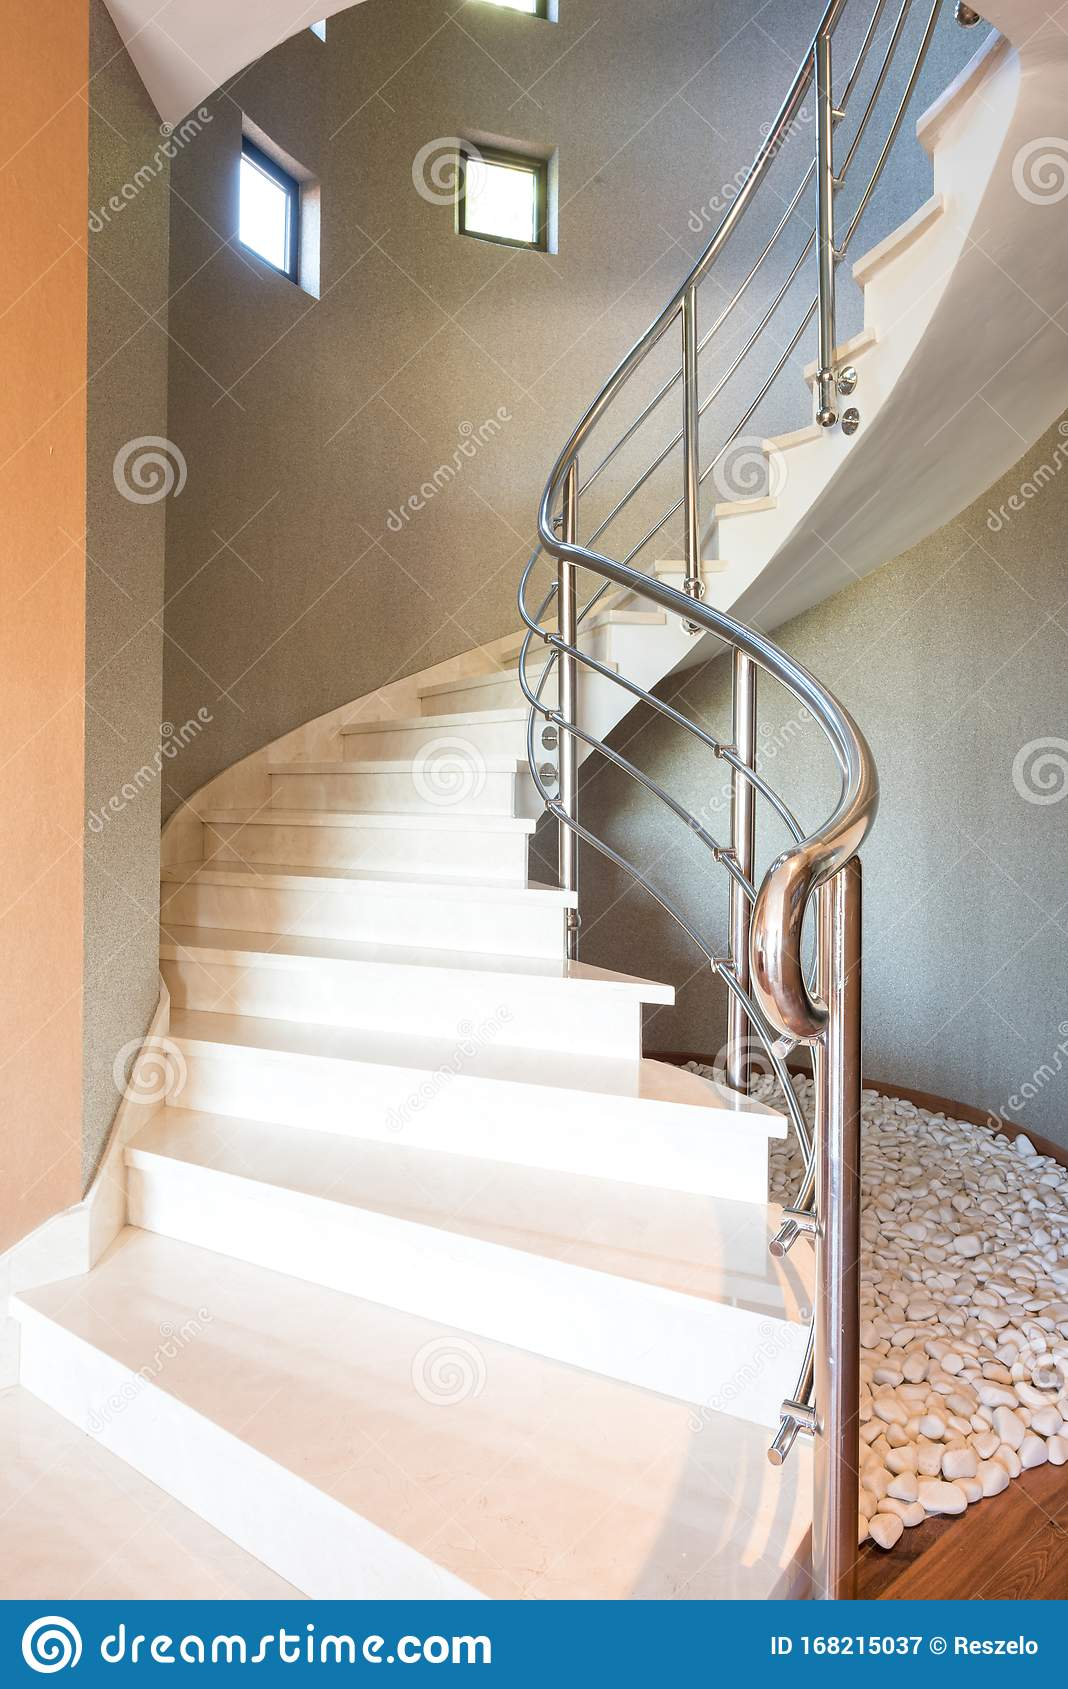 This Architecture Photo Shows A Curved Stairway In A Modern House With Marble Stairs And Steel Handles Stock Image Image Of Stairs Showing 168215037